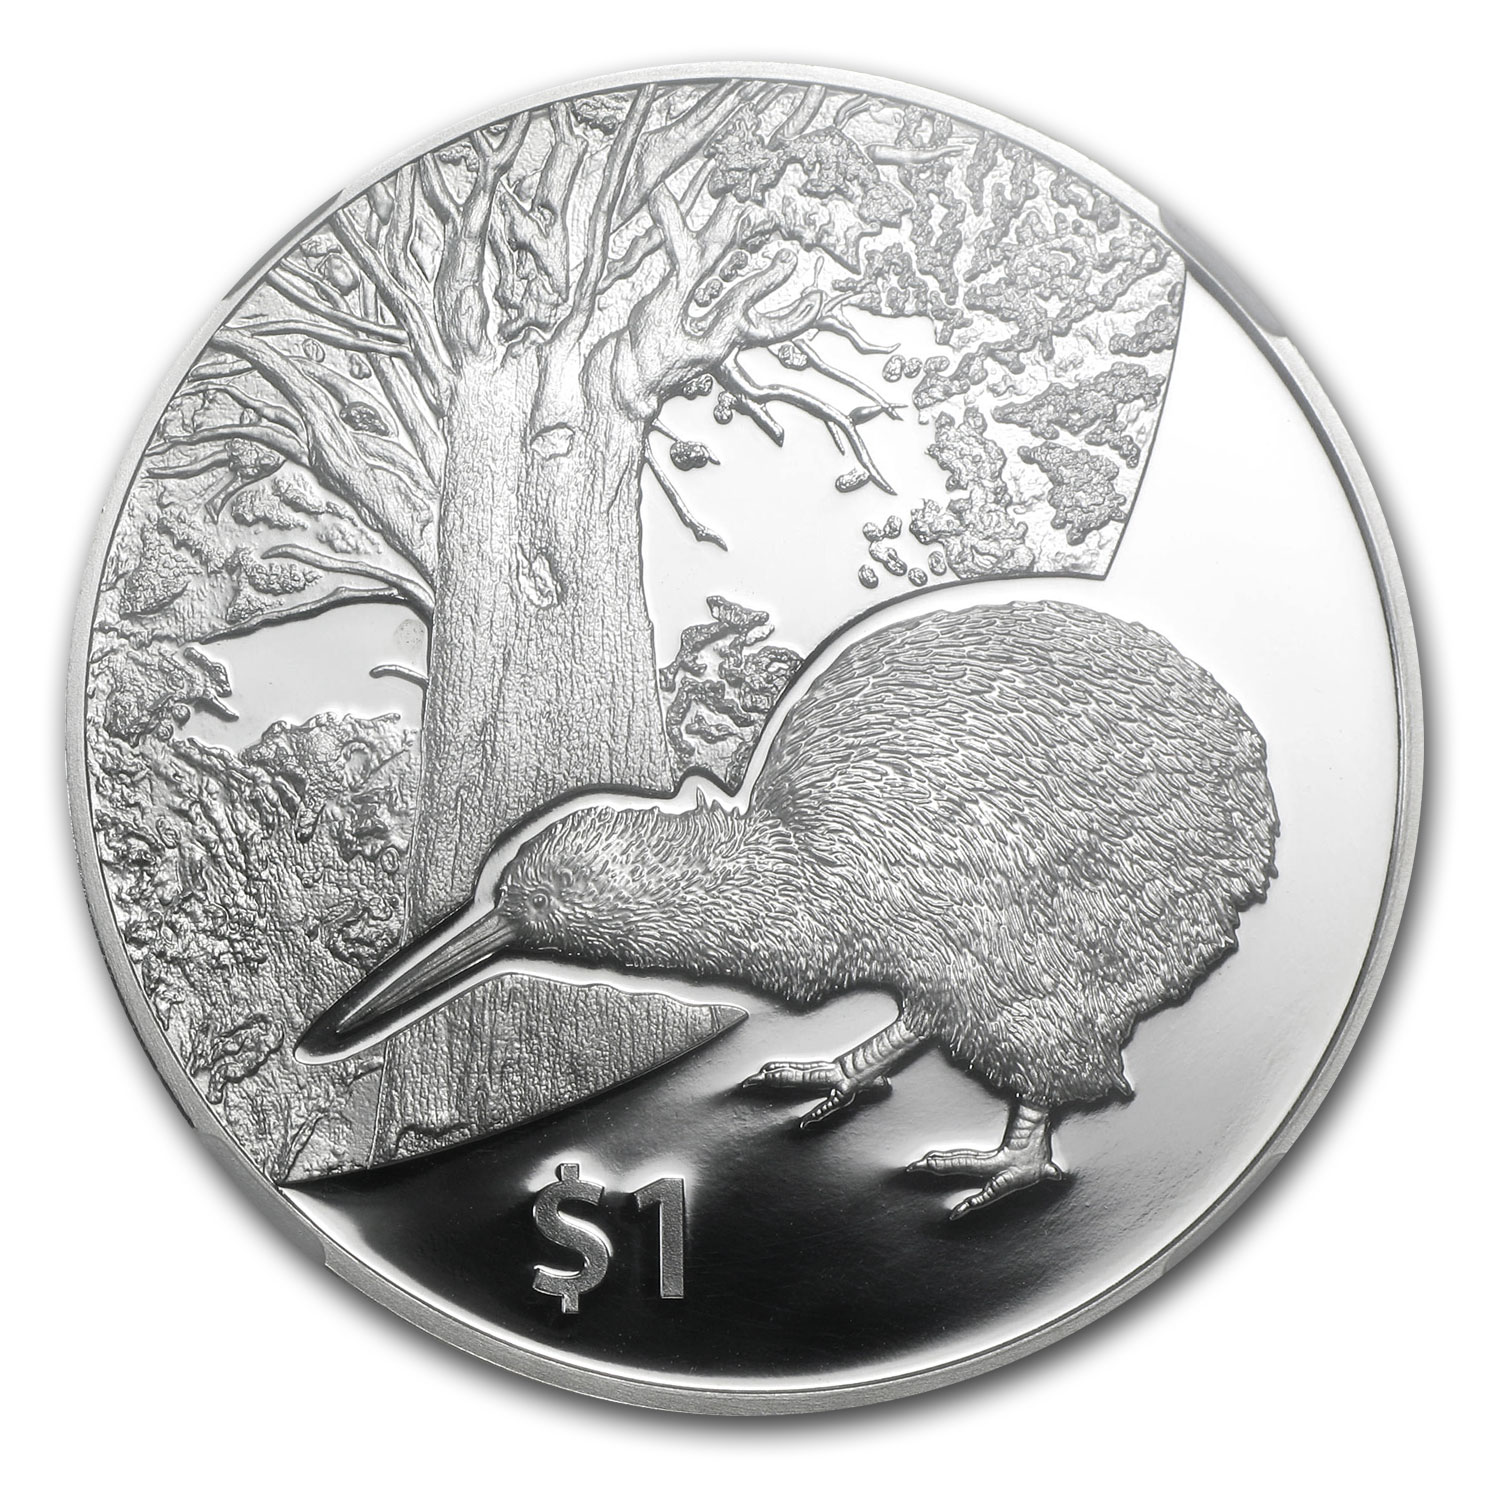 2013 1 oz Silver New Zealand Treasures $1 Kiwi PF-69 NGC